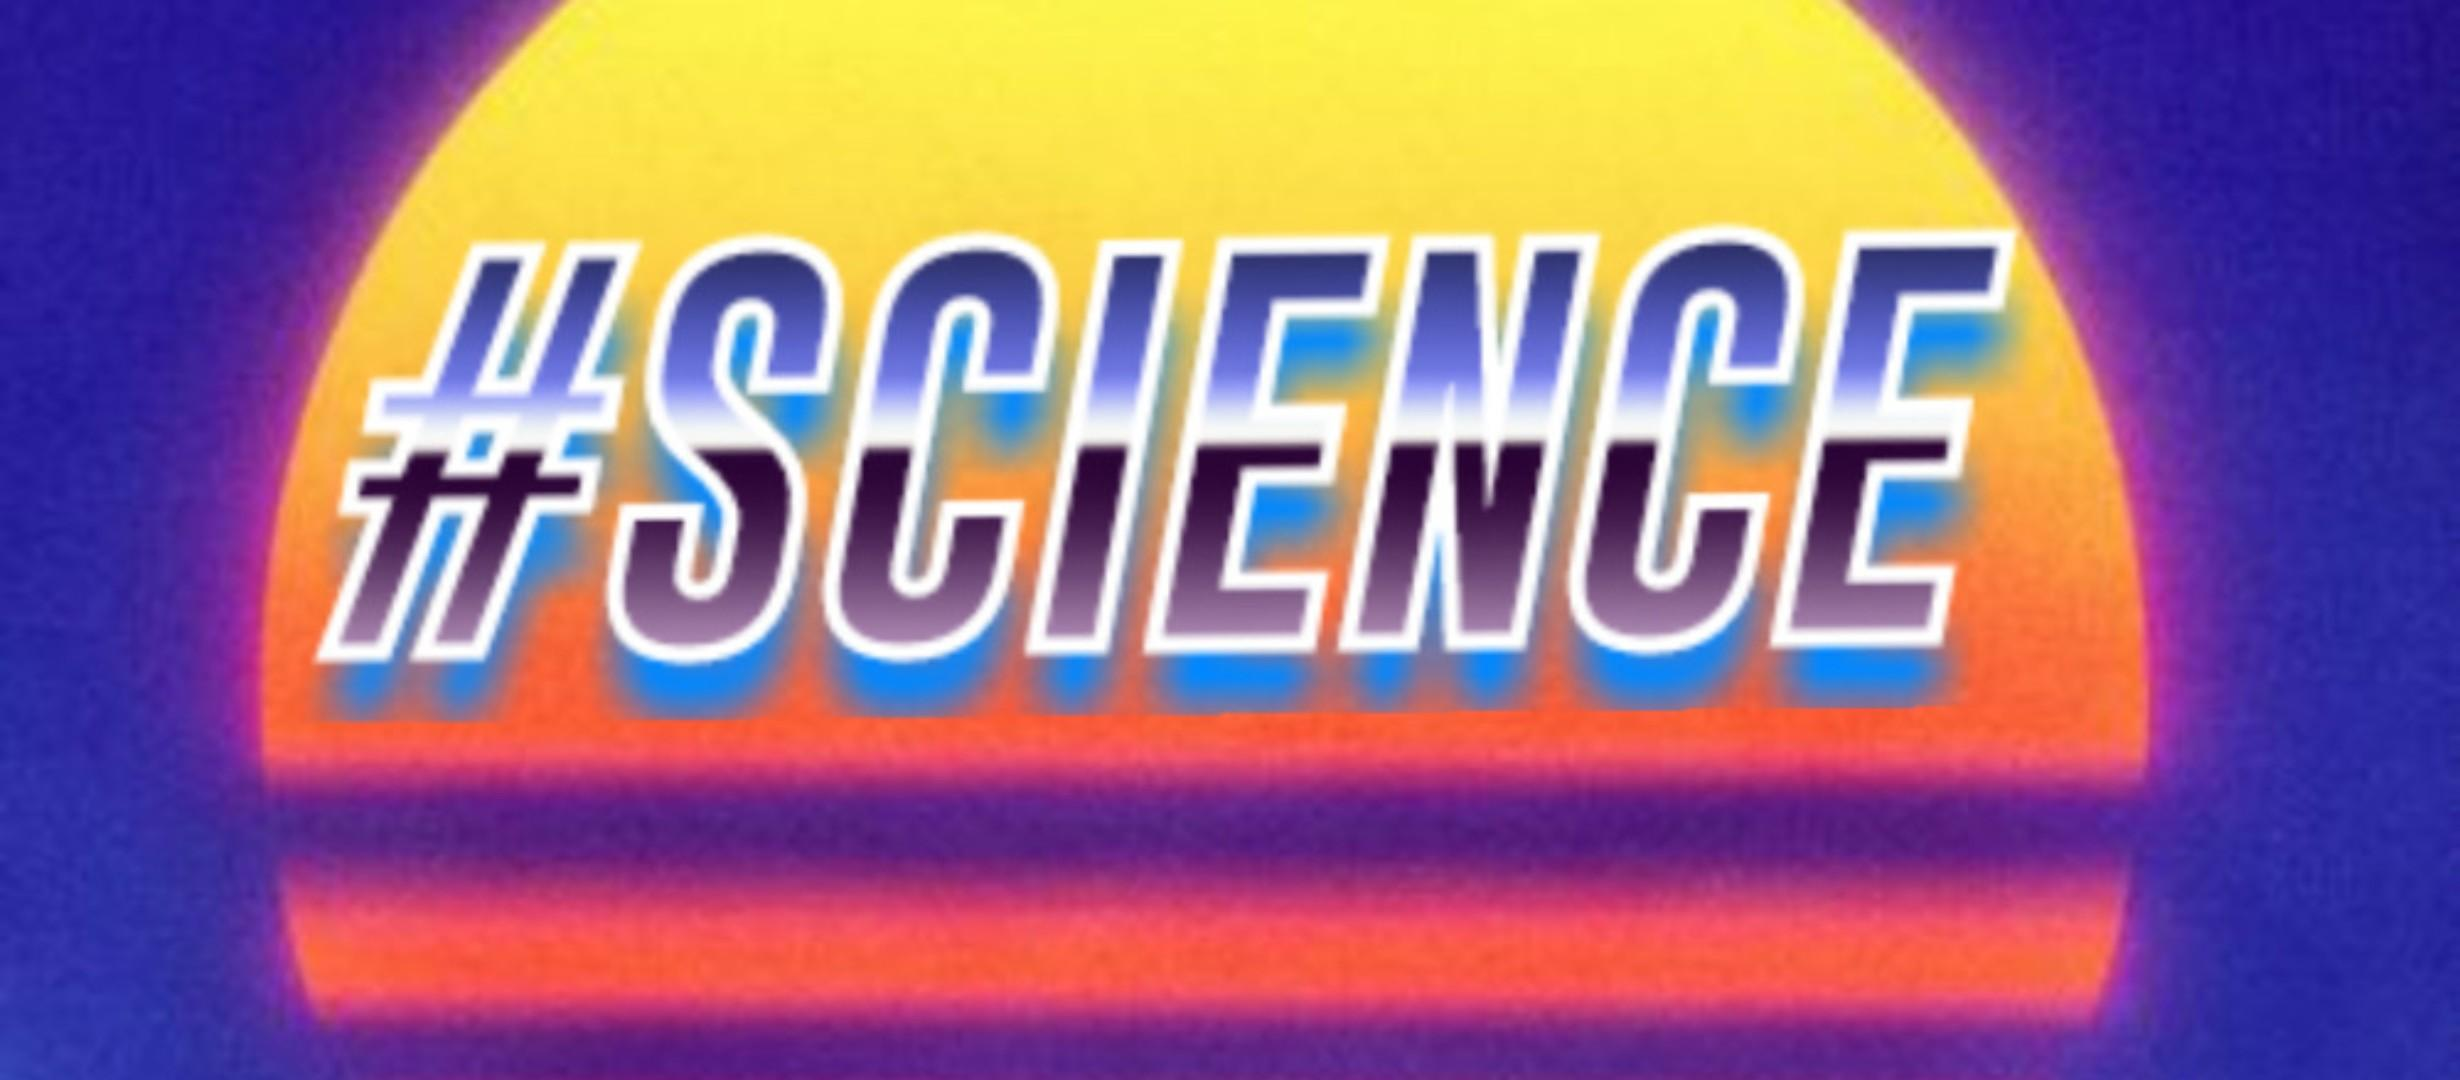 image depicting sunrise/sunset with the word '#science' over it